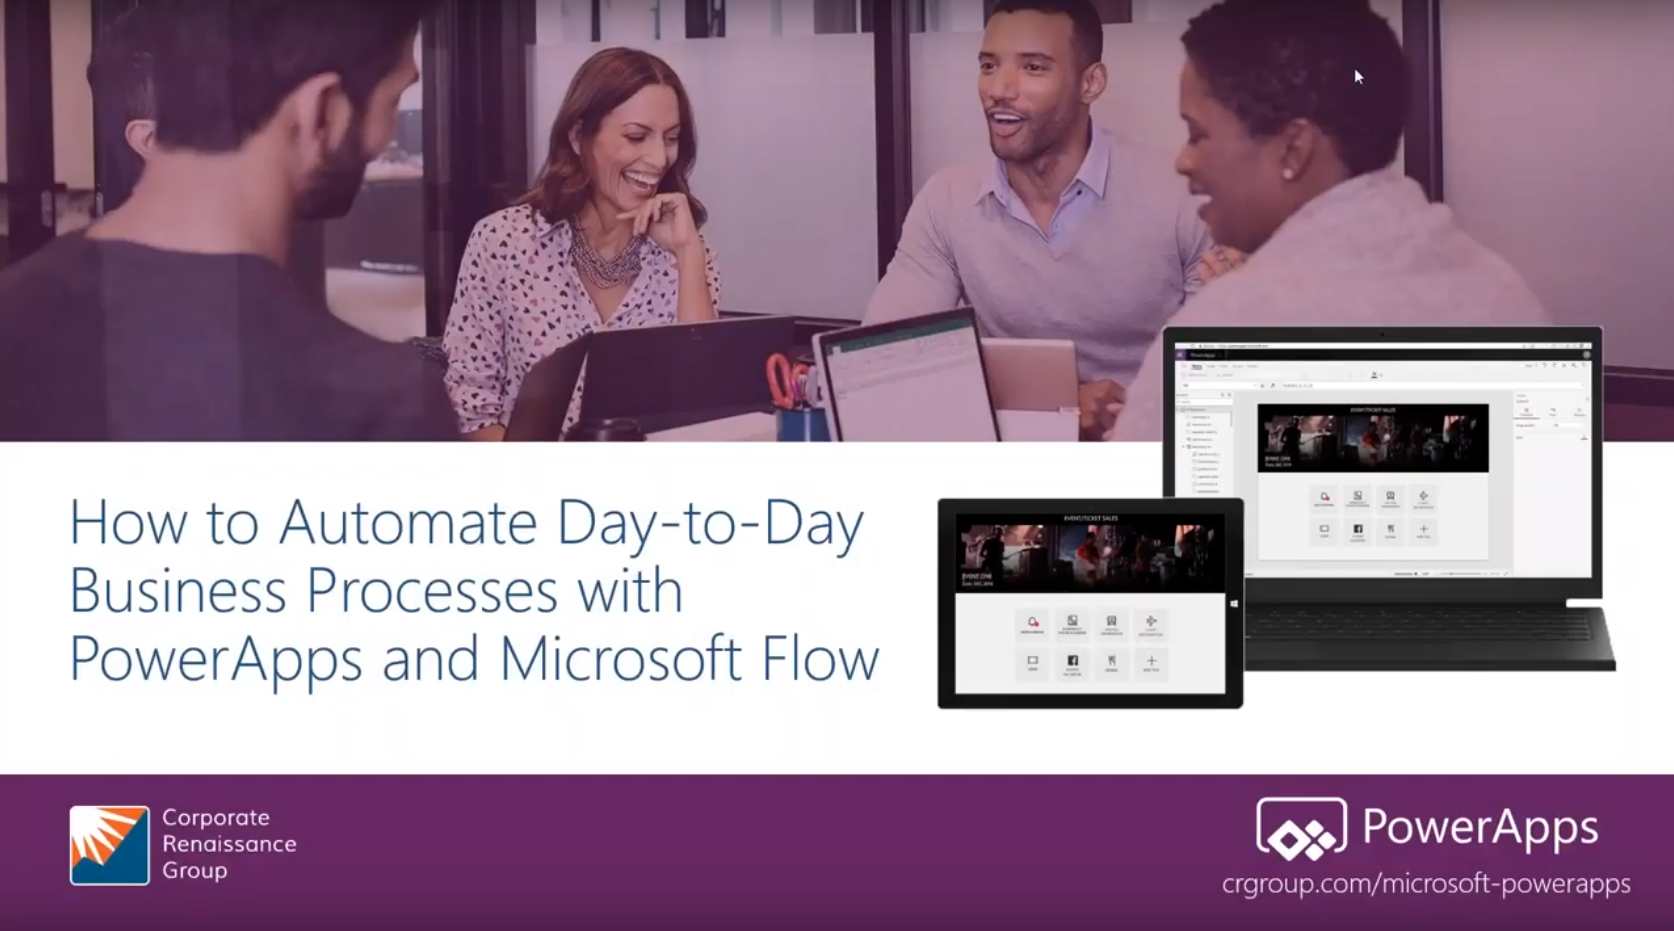 Automate Day-to-Day Business Processes video thumbnail